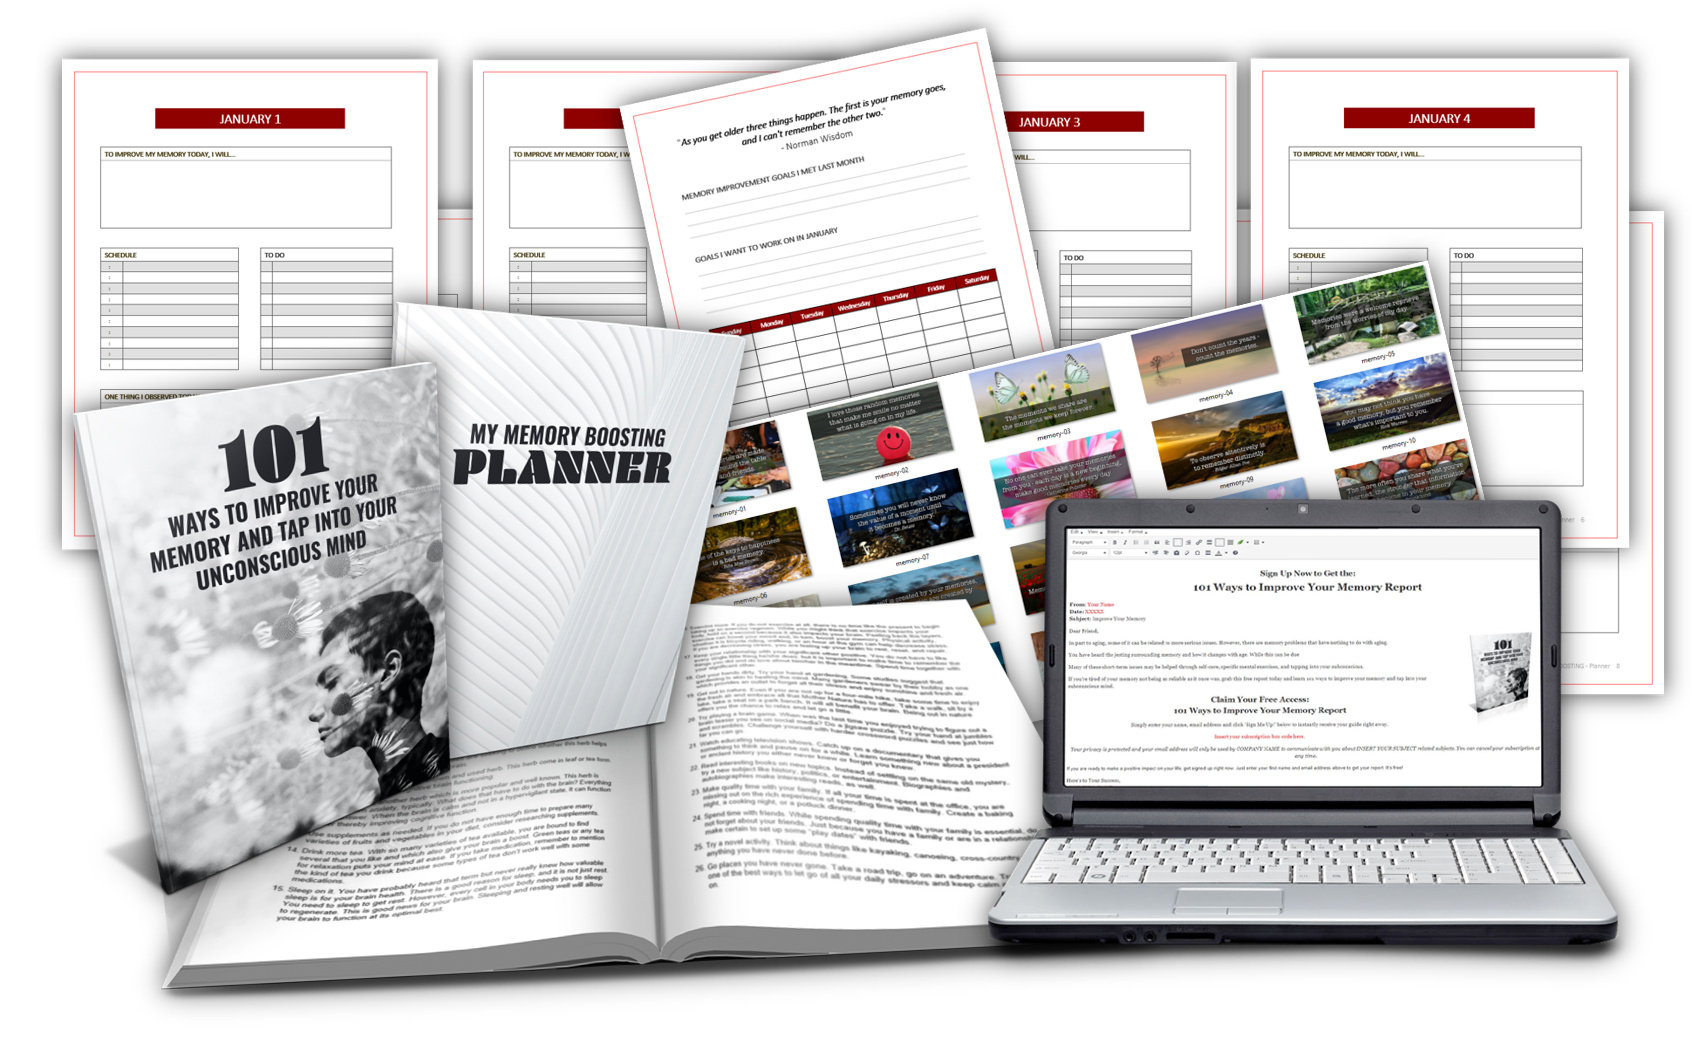 Improve Your Memory Planner Pack